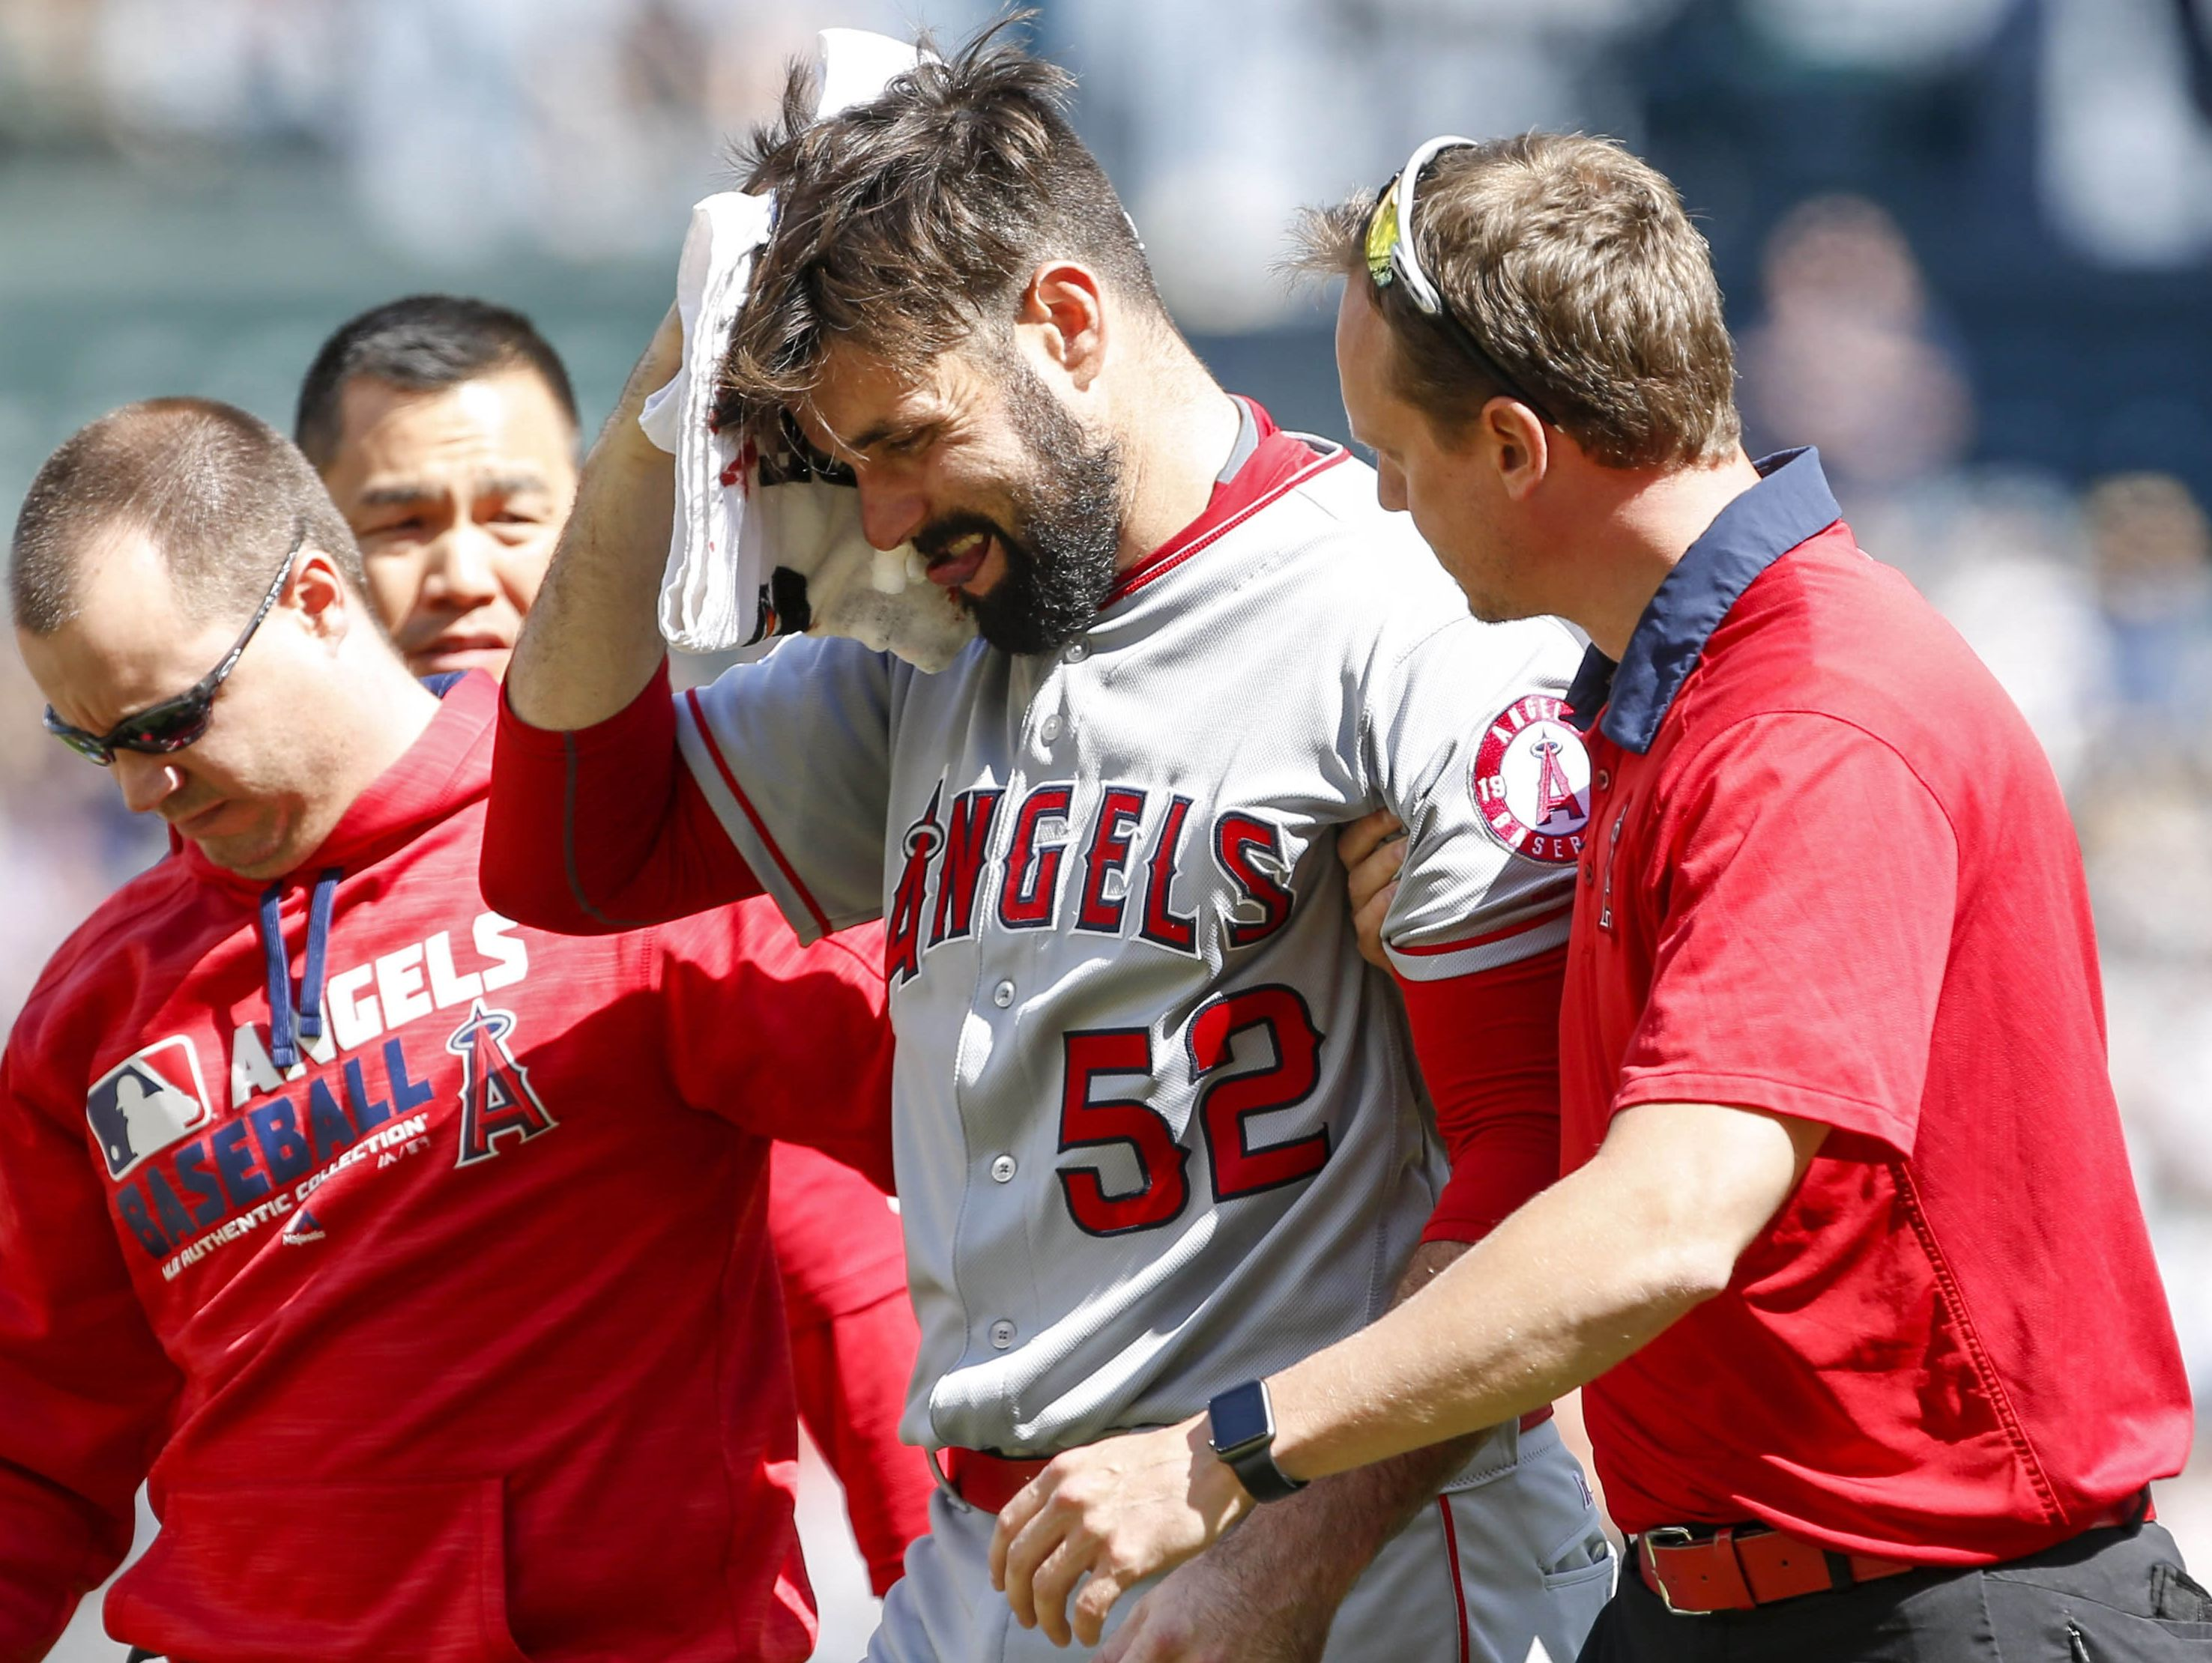 Matt Shoemaker leaves the field after being struck in the head by a line drive.